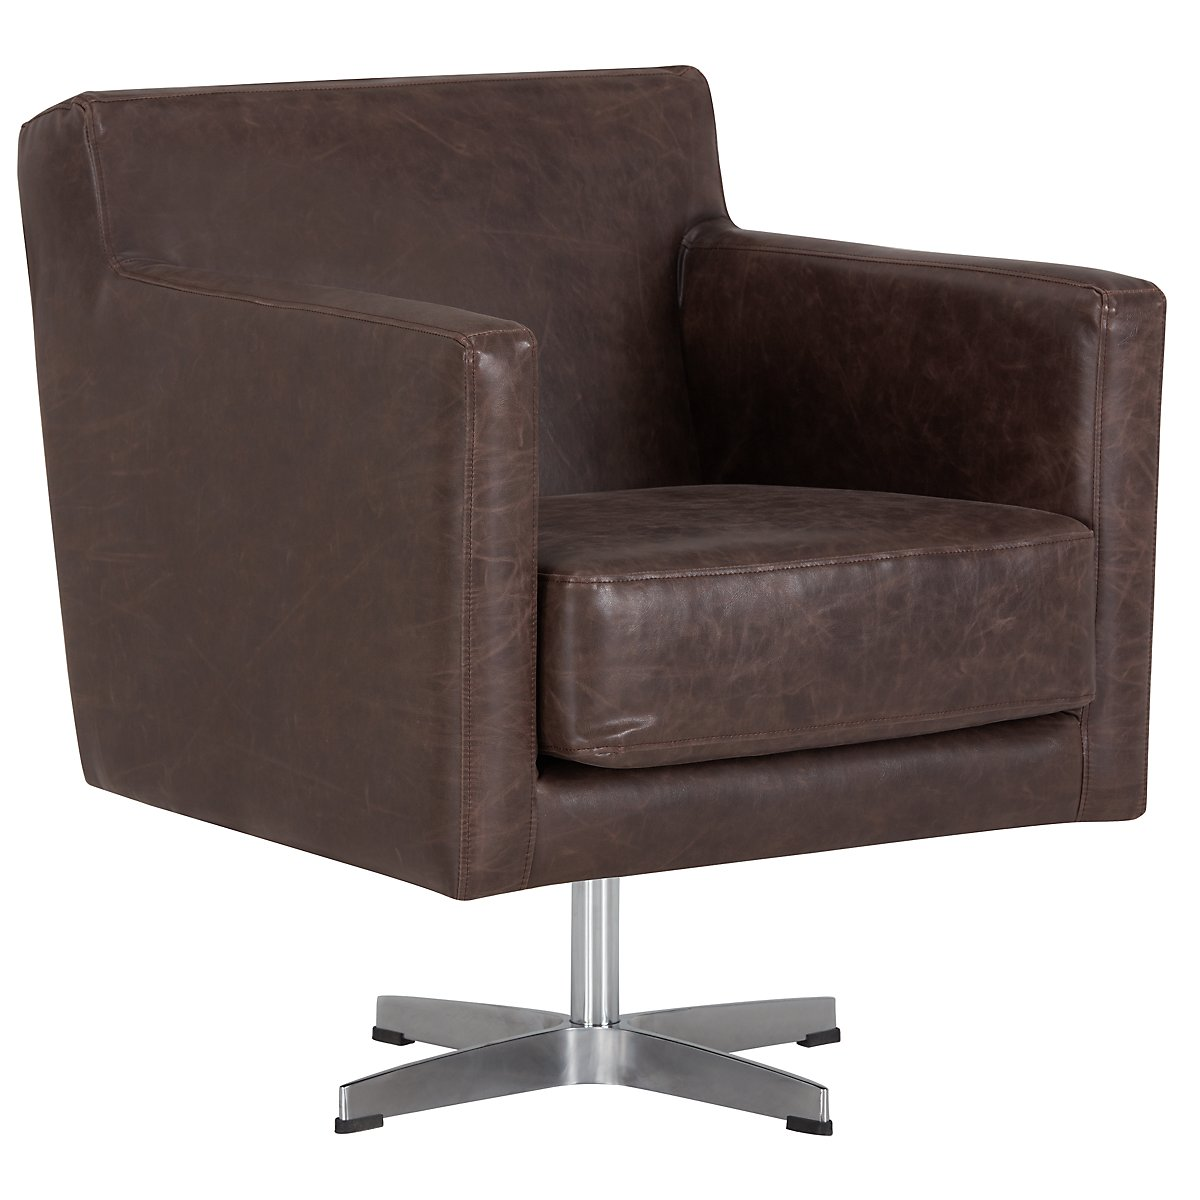 City Furniture Nora Brown Swivel Chair